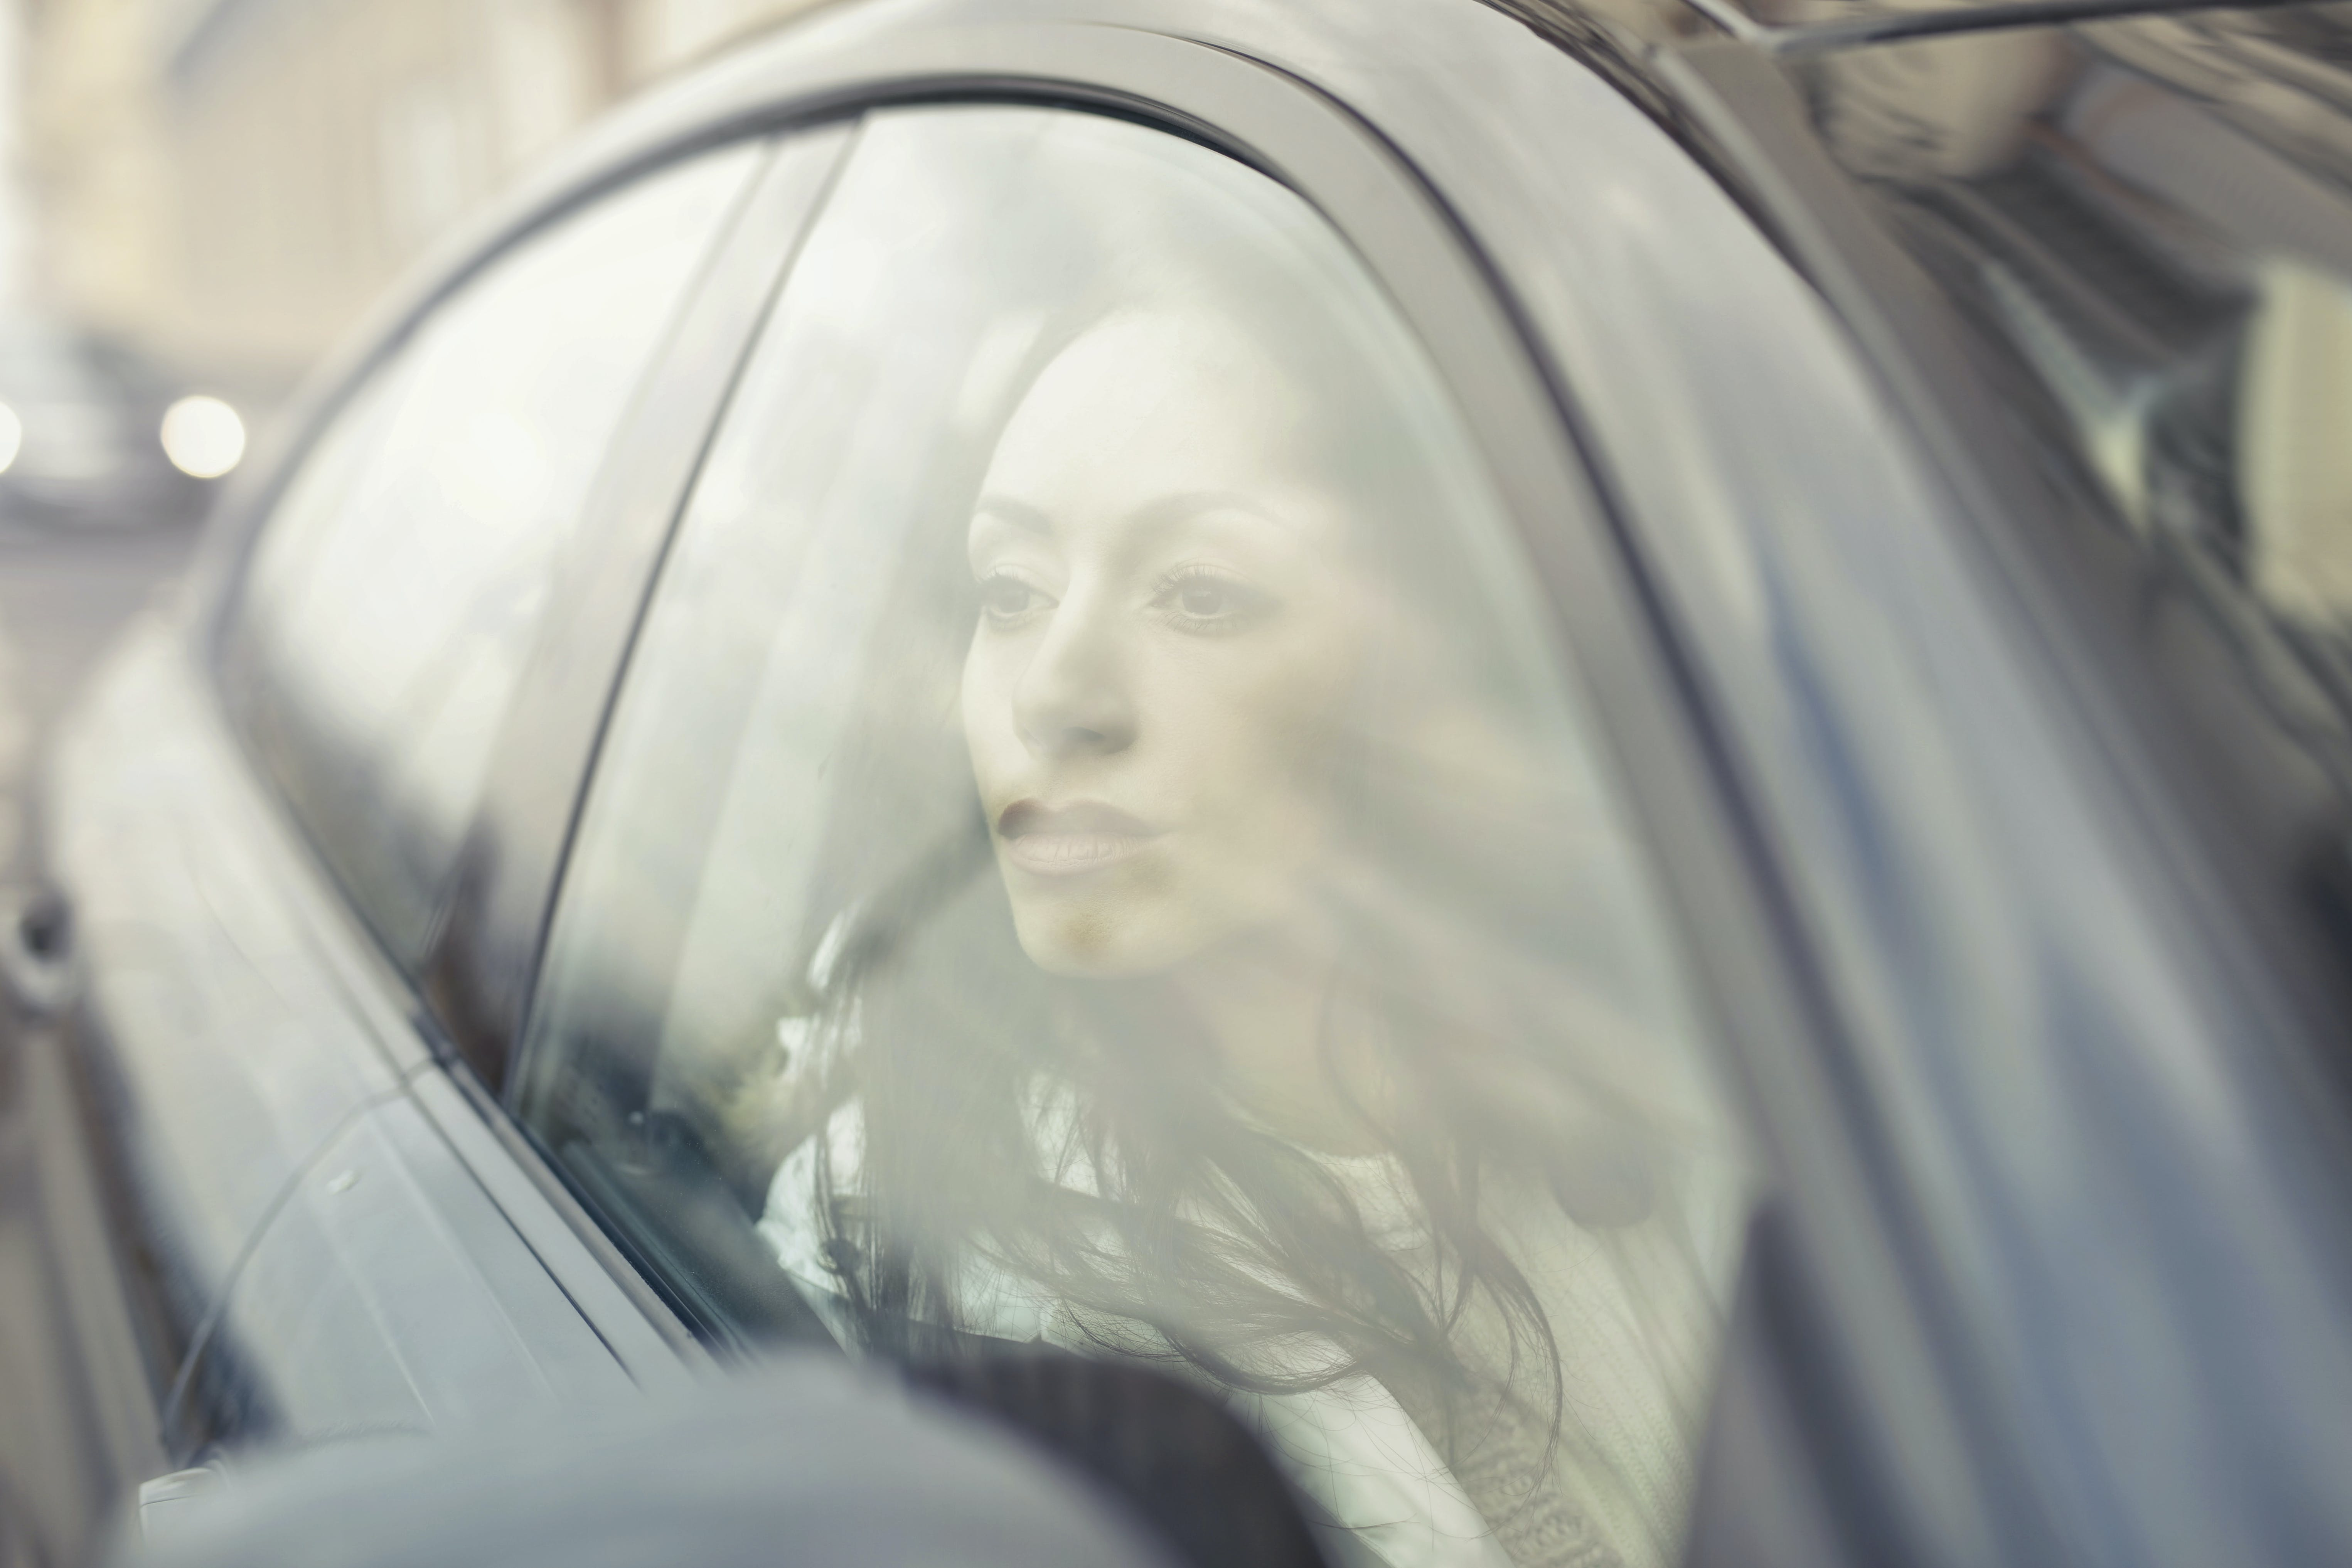 Woman Inside the Black Sedan at Daytime